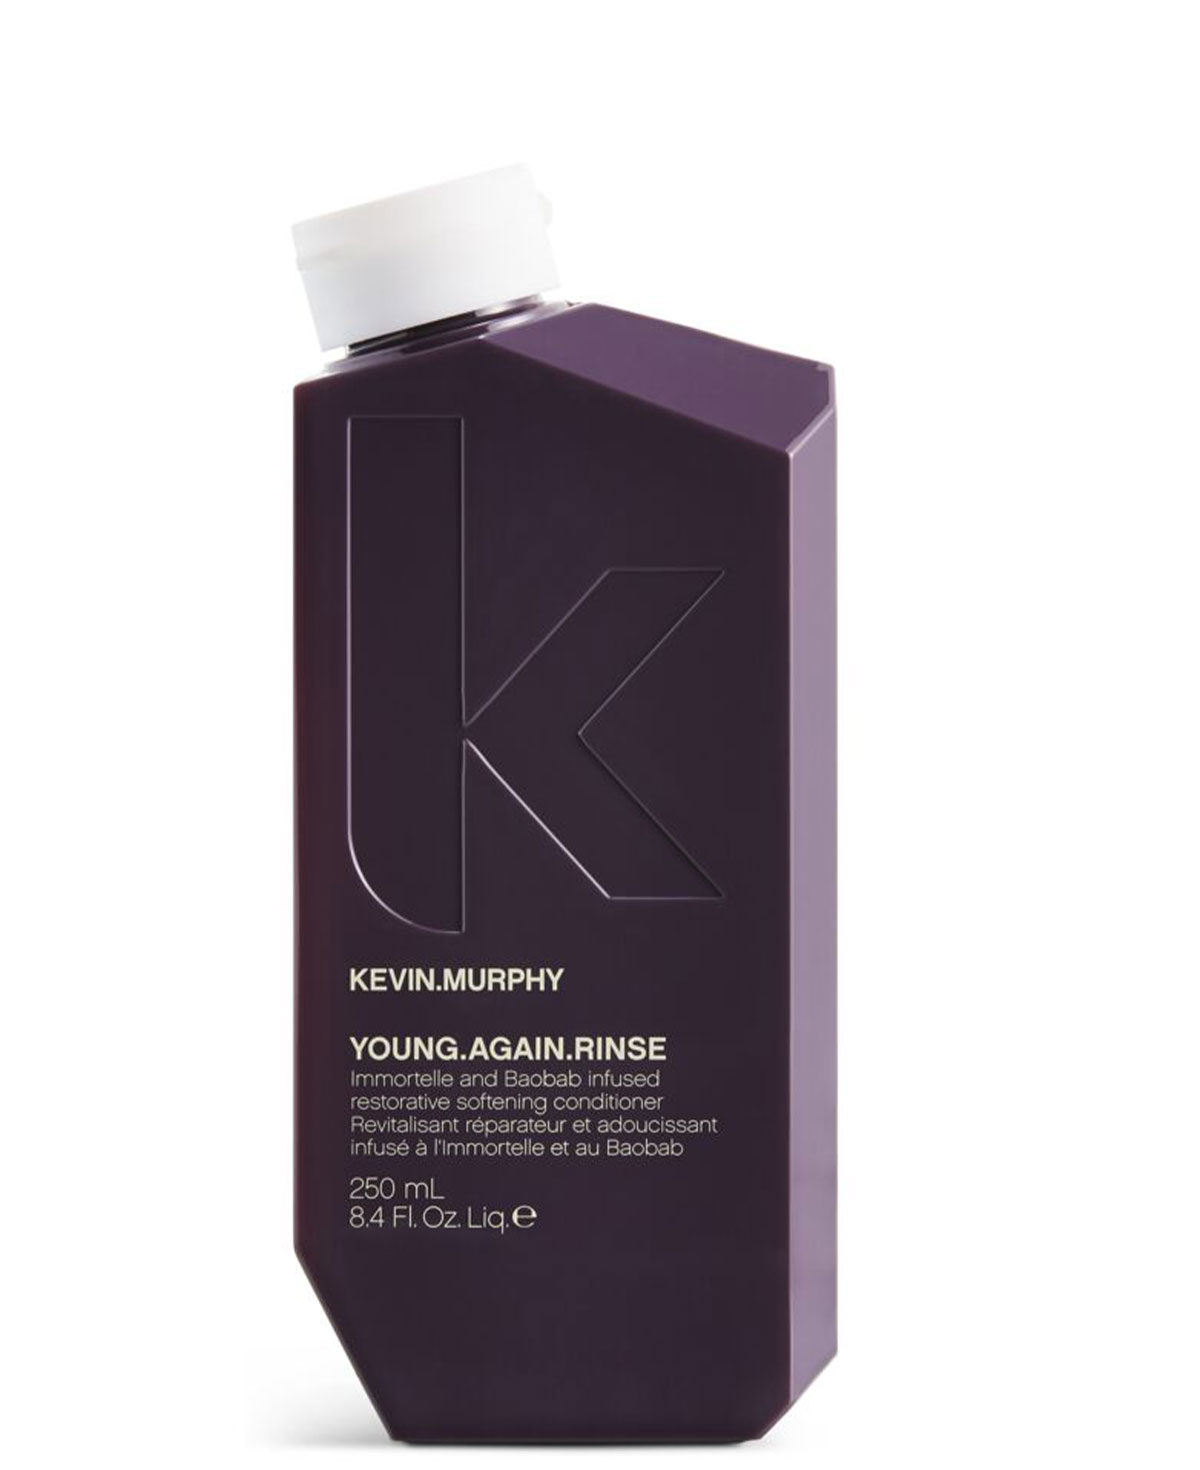 Kevin.Murphy YOUNG.AGAIN.RINSE 250ml